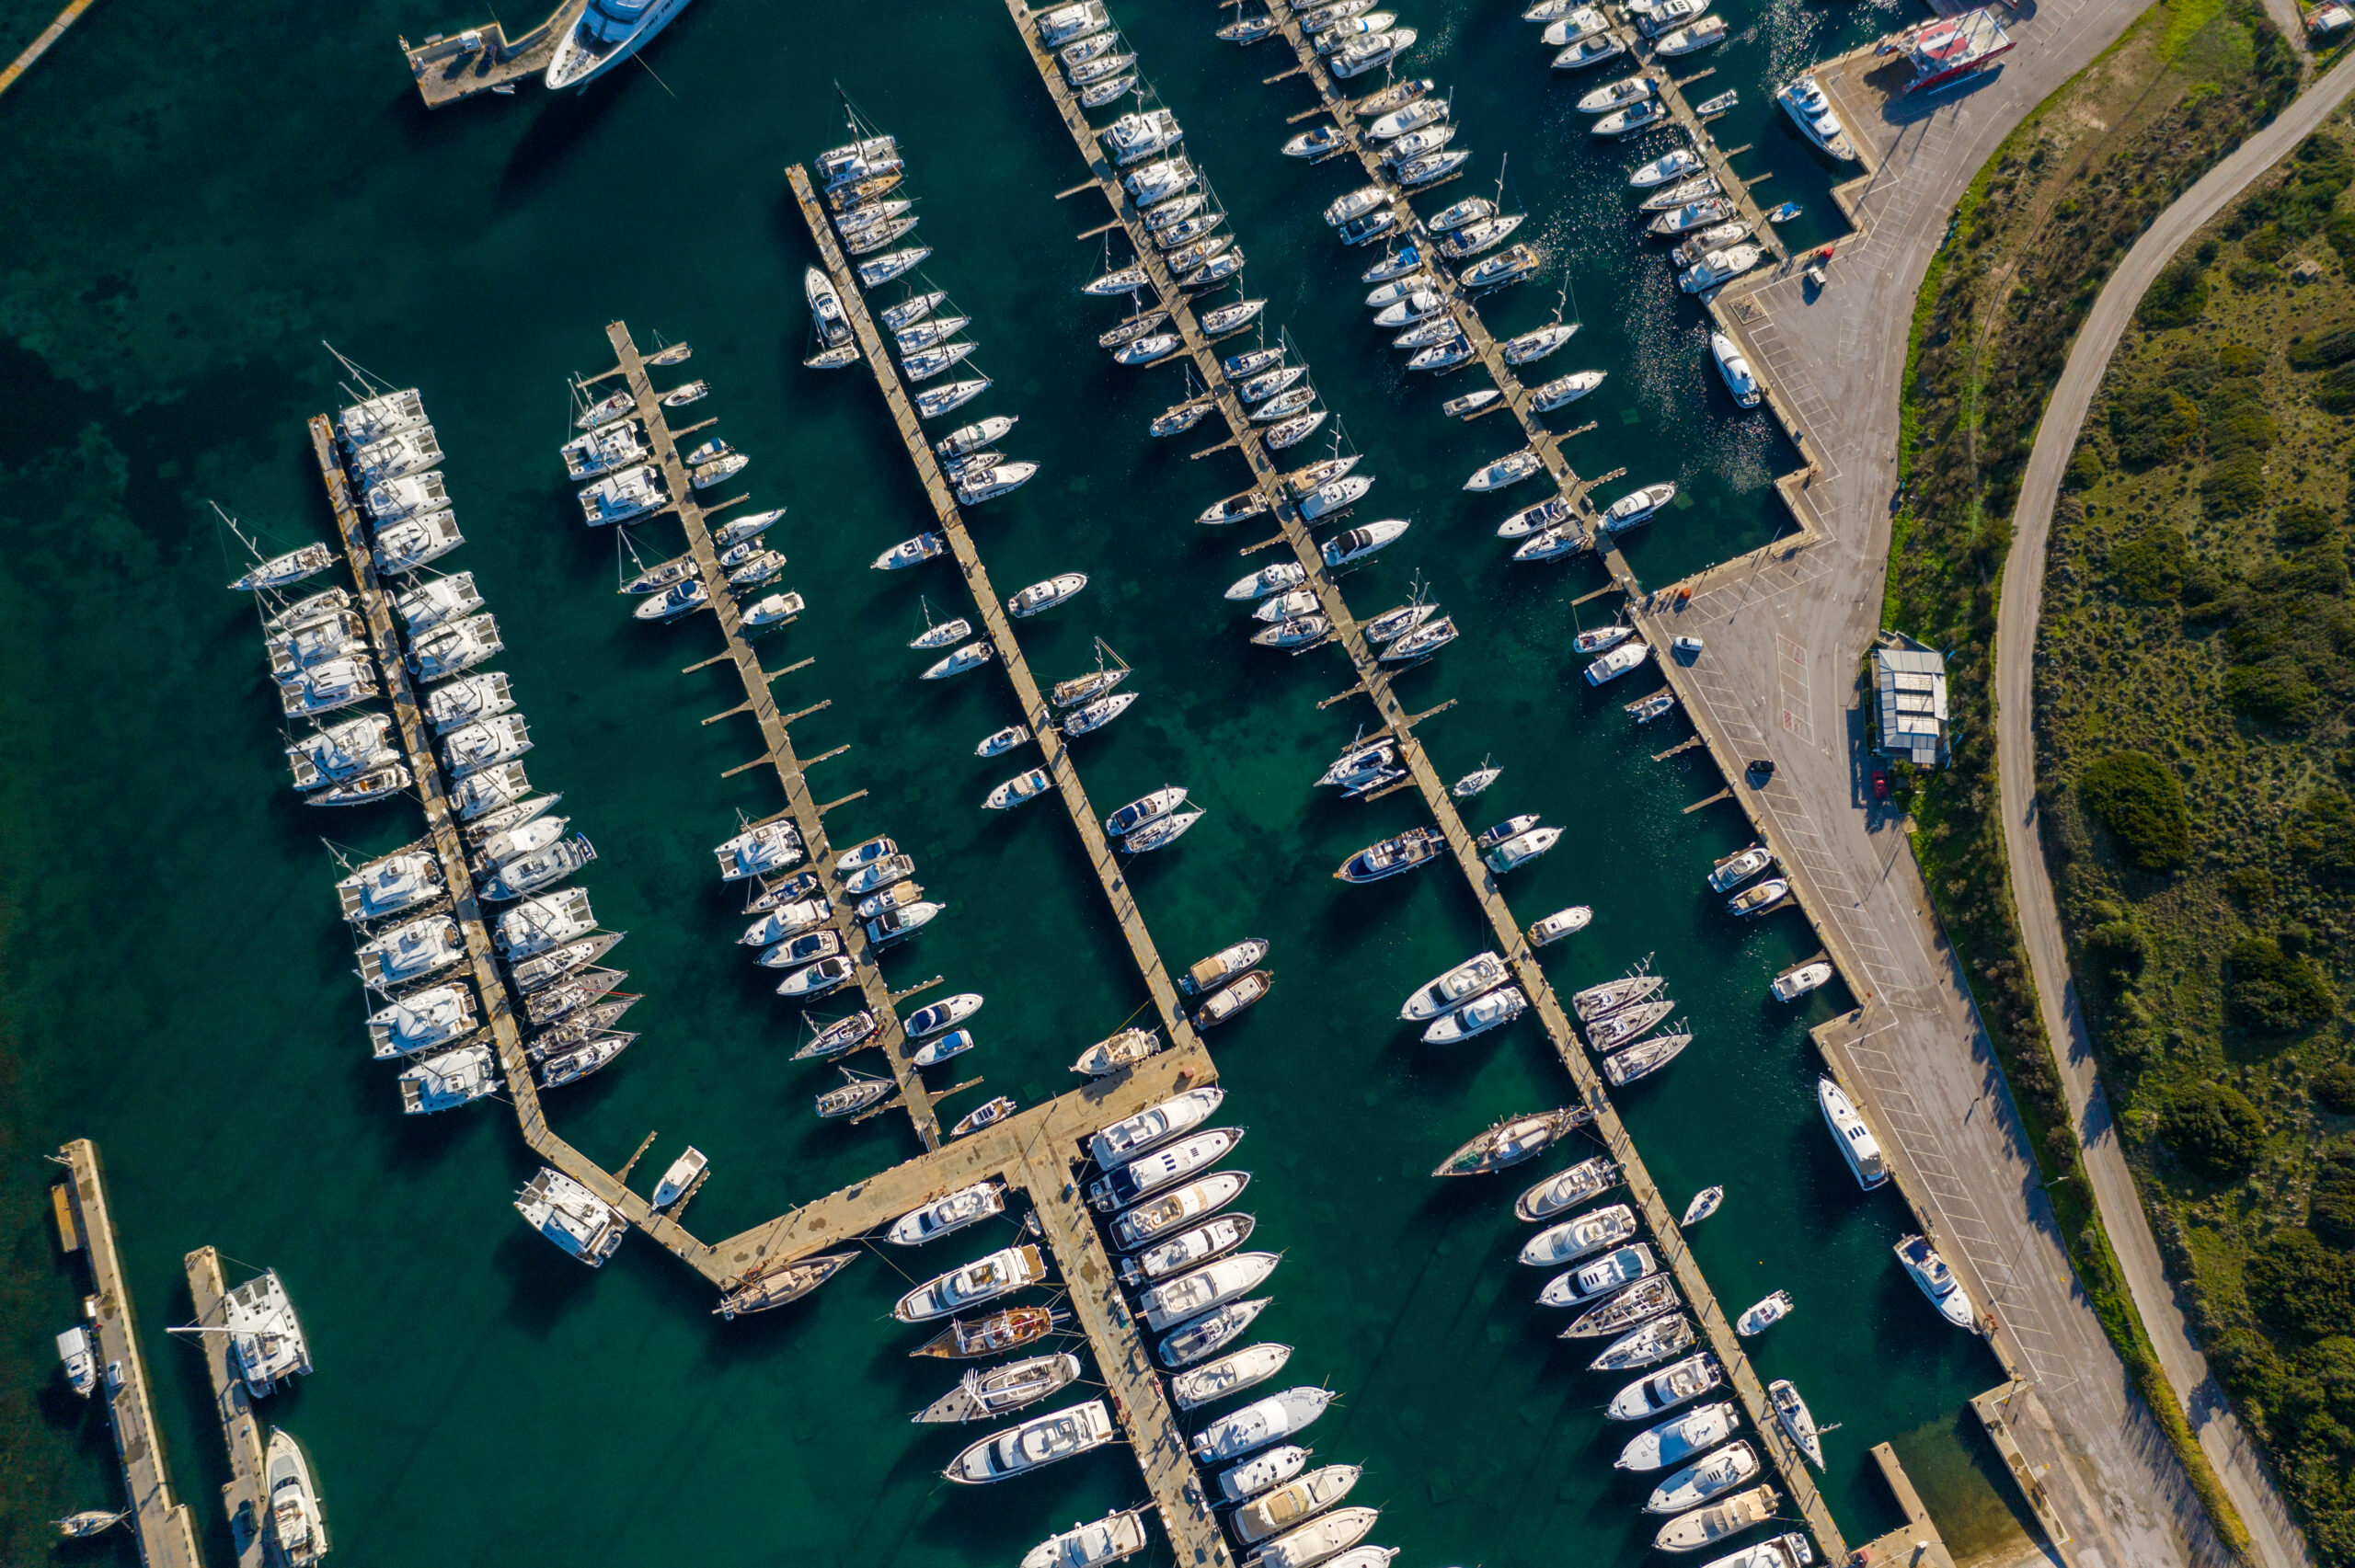 Aerial shot of the Olympic Marina in Greece